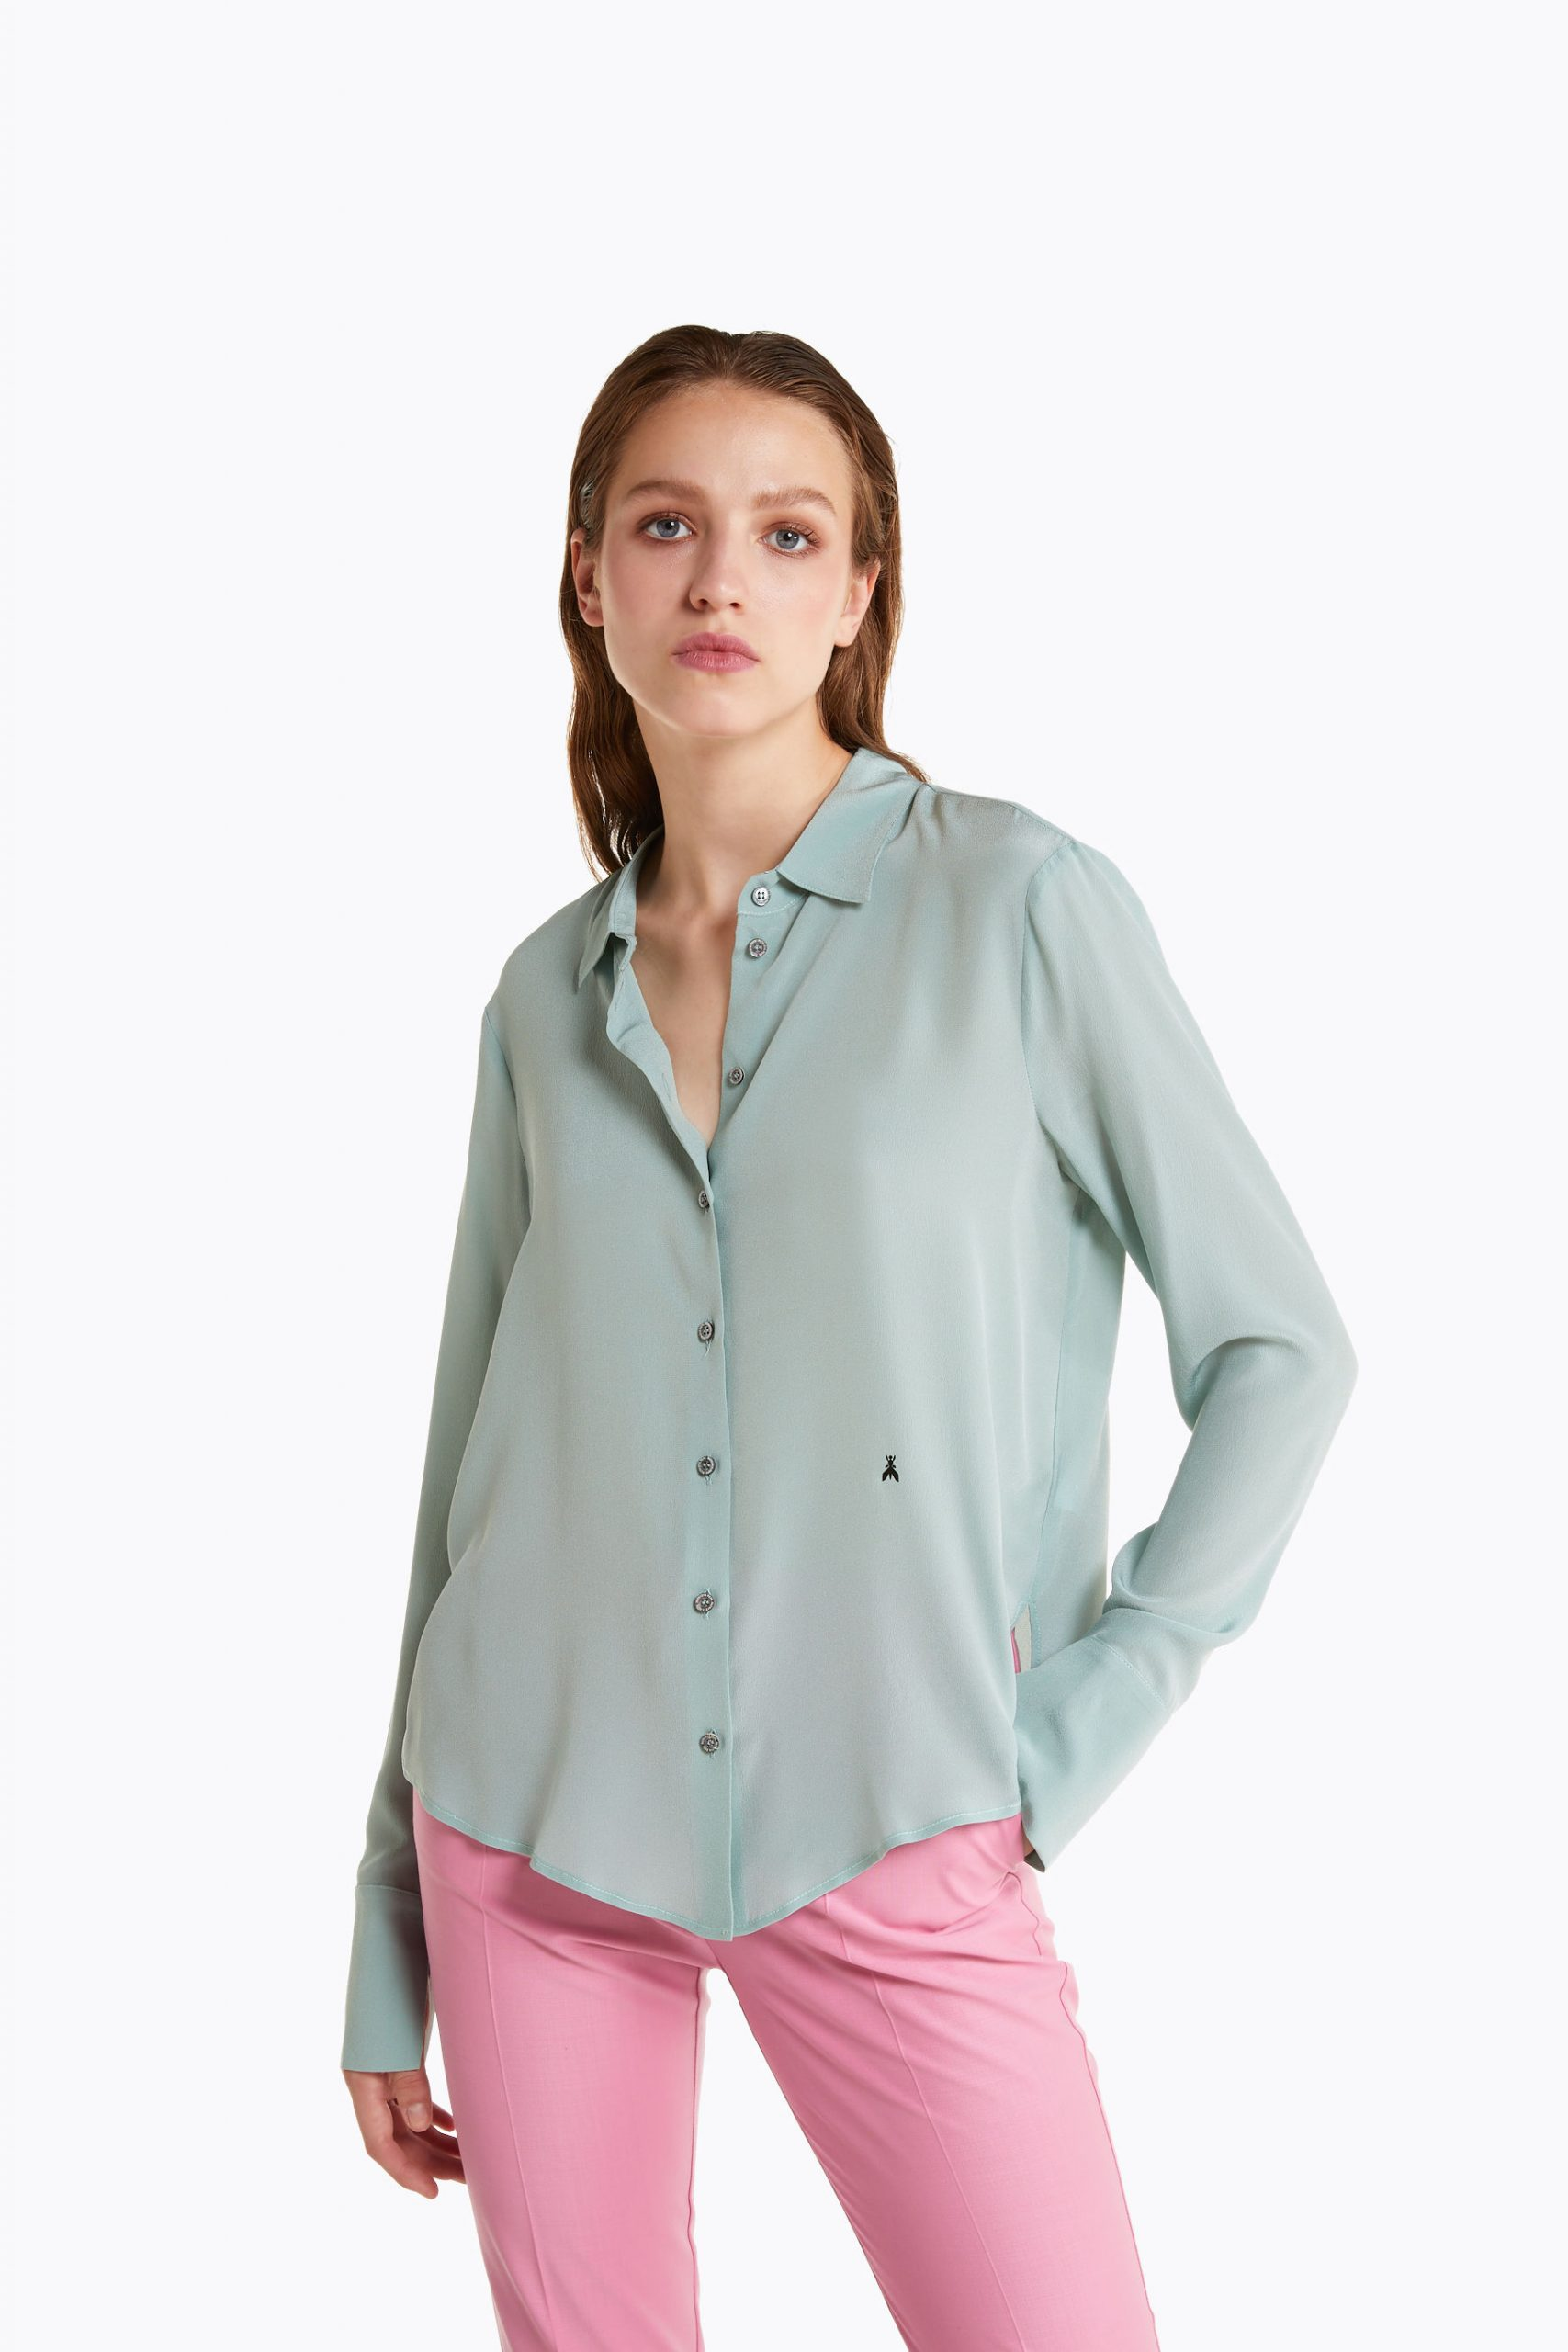 Abbigliamento Patrizia Pepe  Camicia in crêpe de chine di seta Soft Green female collezione 2020 shop the look